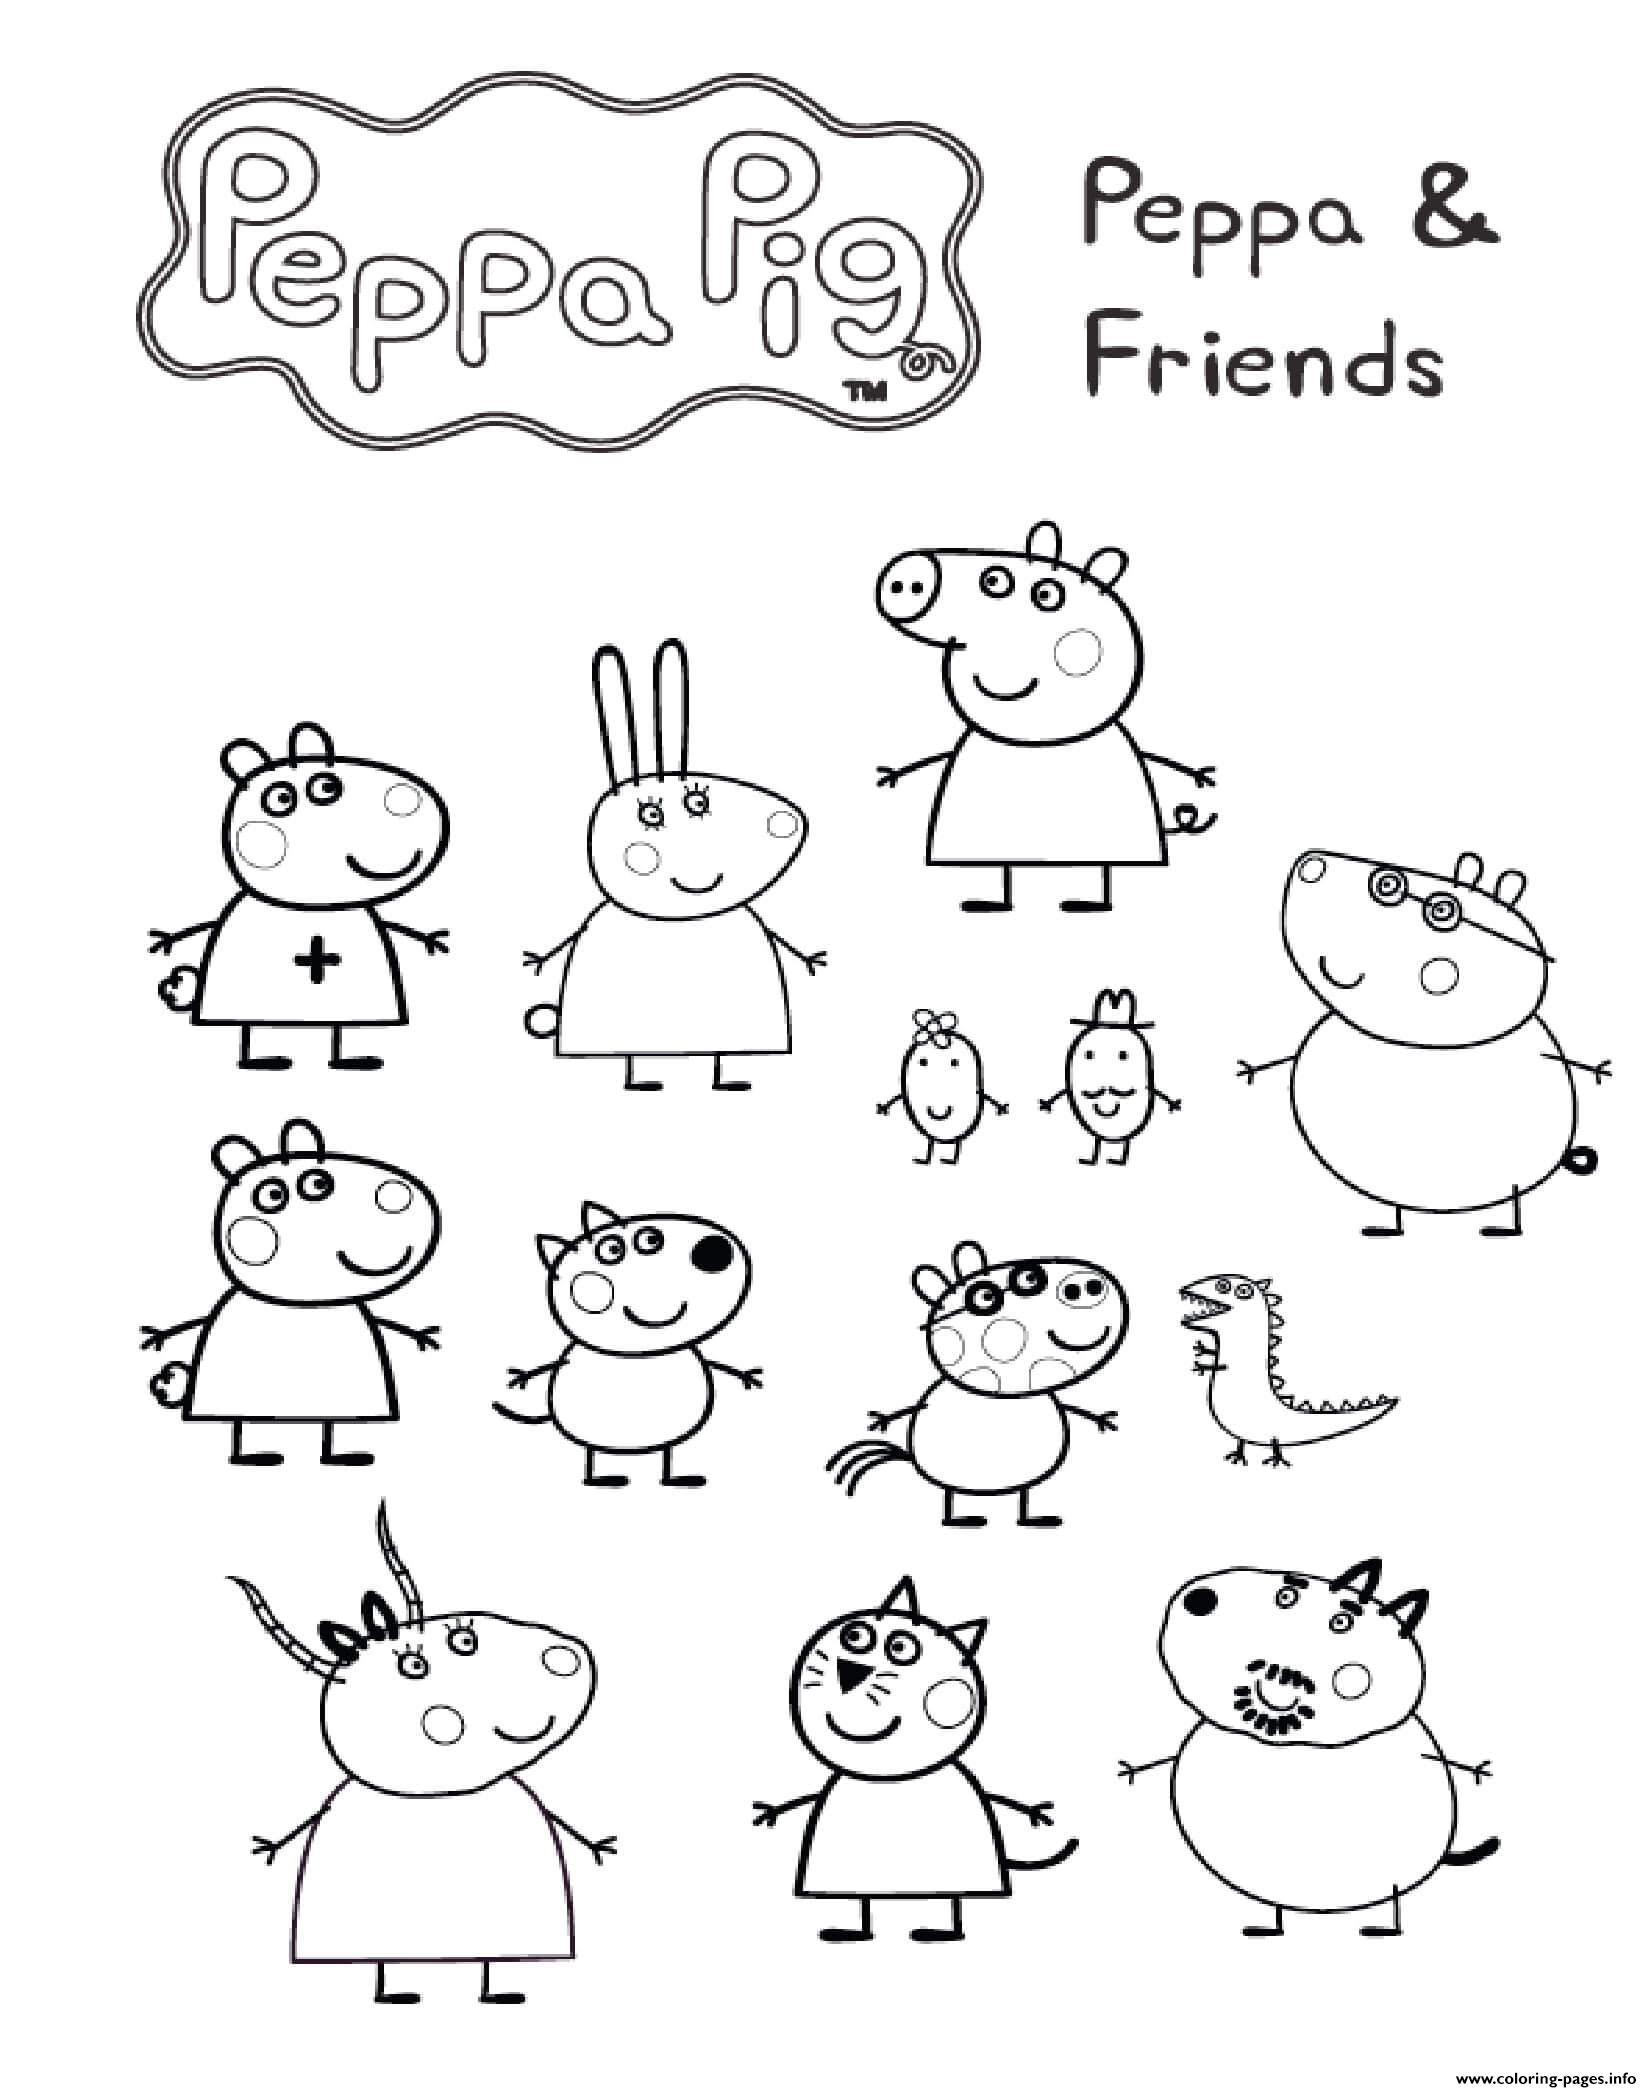 Peppa Pig And Friends Coloring Pages Printable